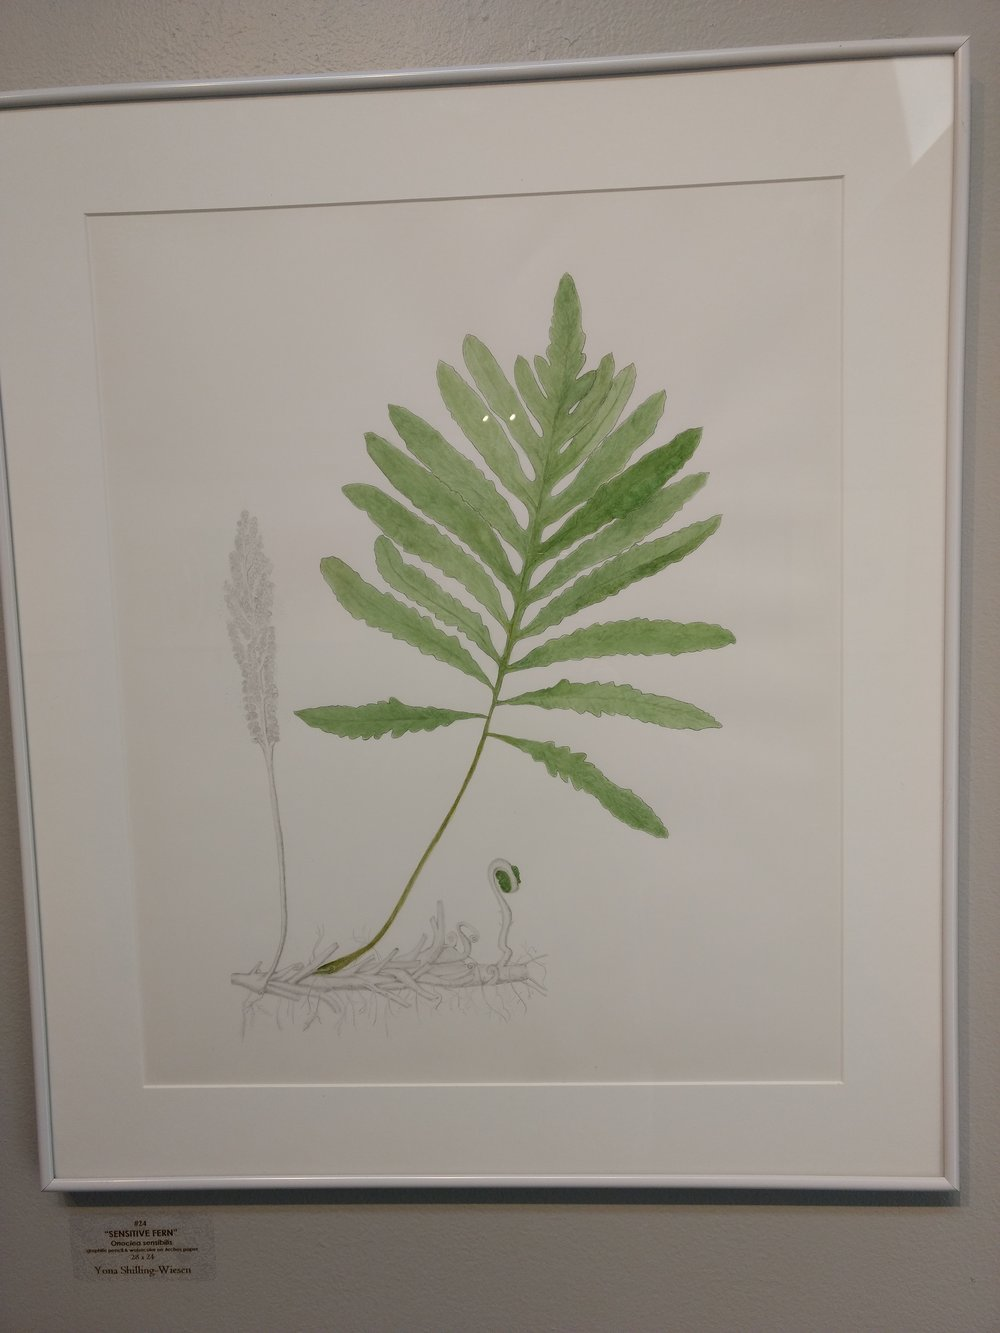 Sensitive Fern by Yon Shilling-Weisen